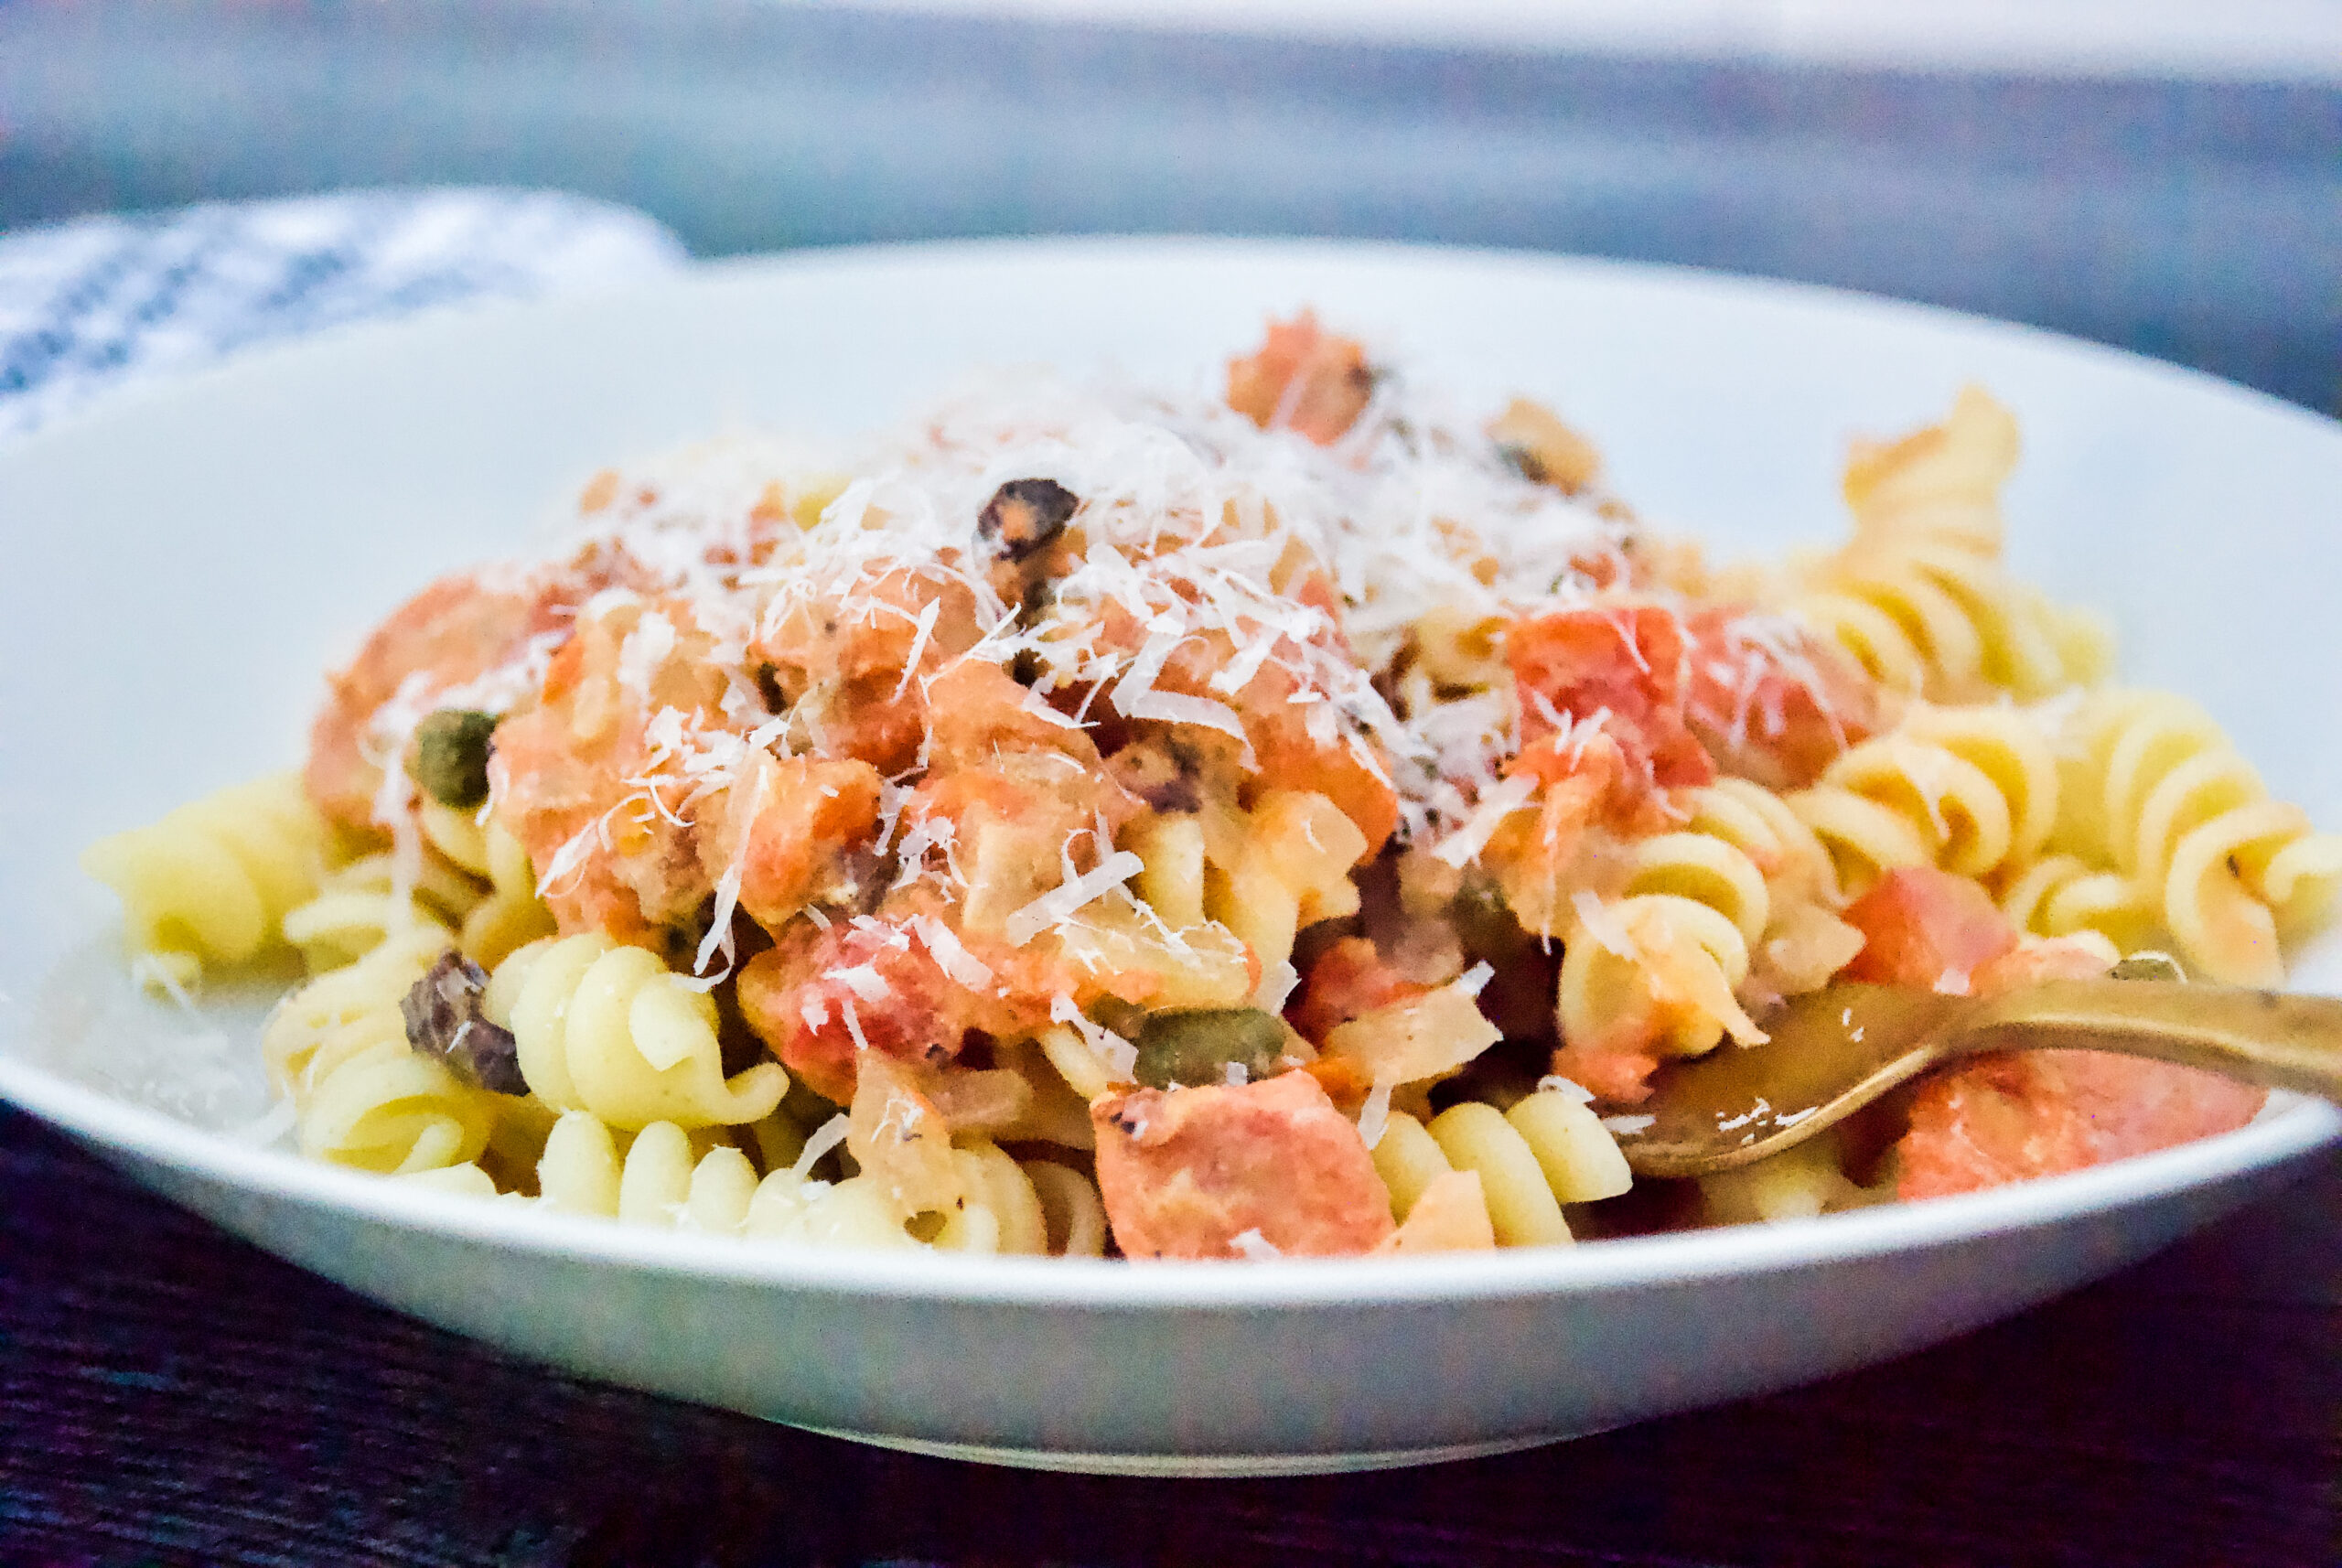 Salmon Pasta: My Mom's Recipe is An All-Time Favorite